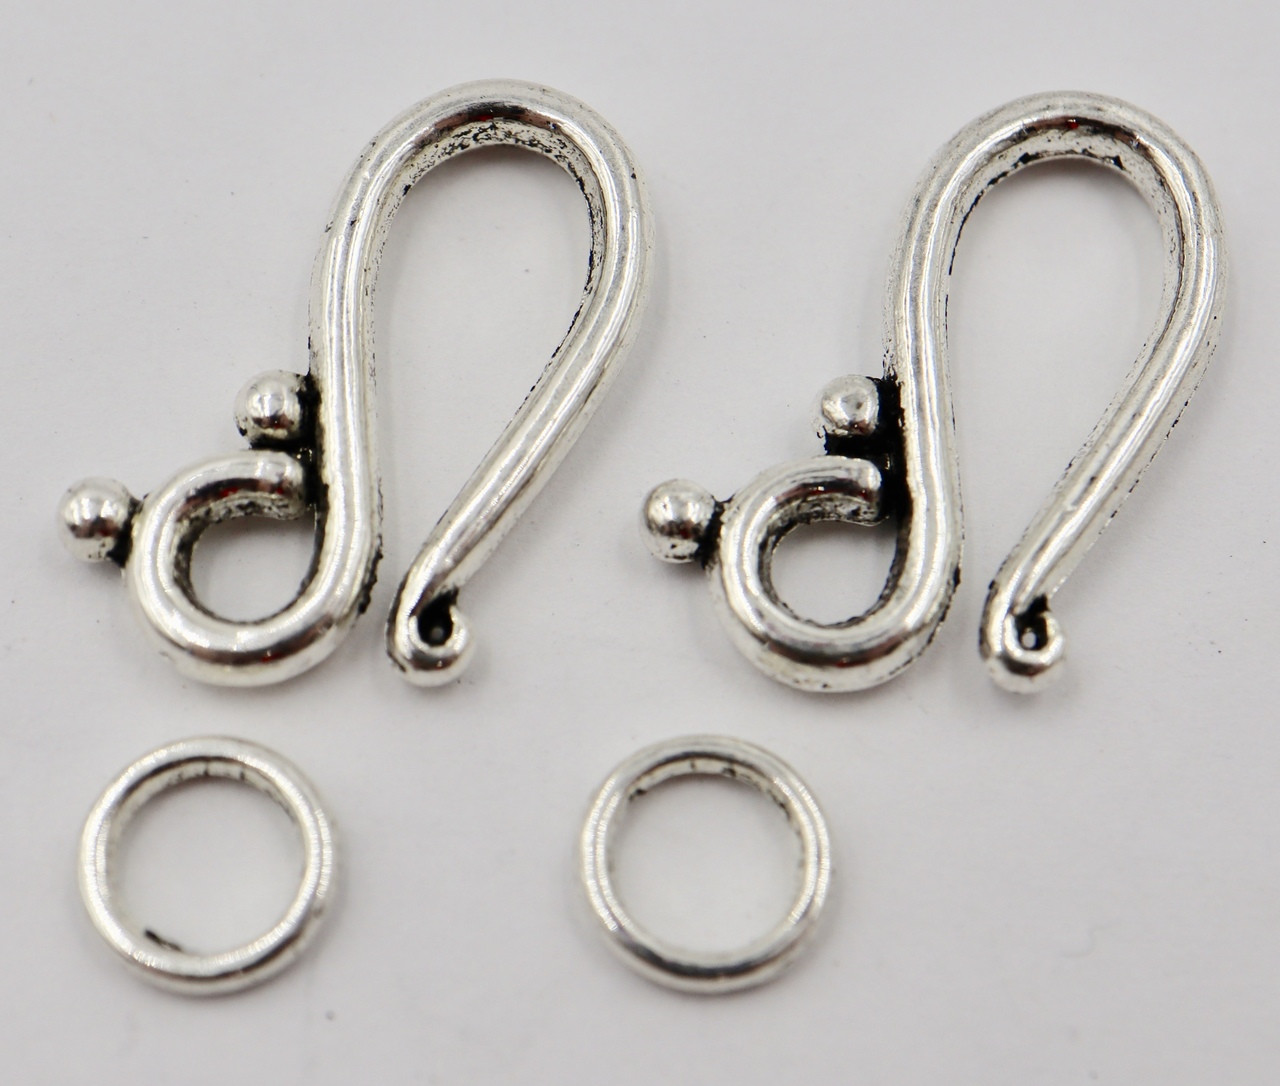 21mm Swirl Hook & Eye Clasp (2 Sets)